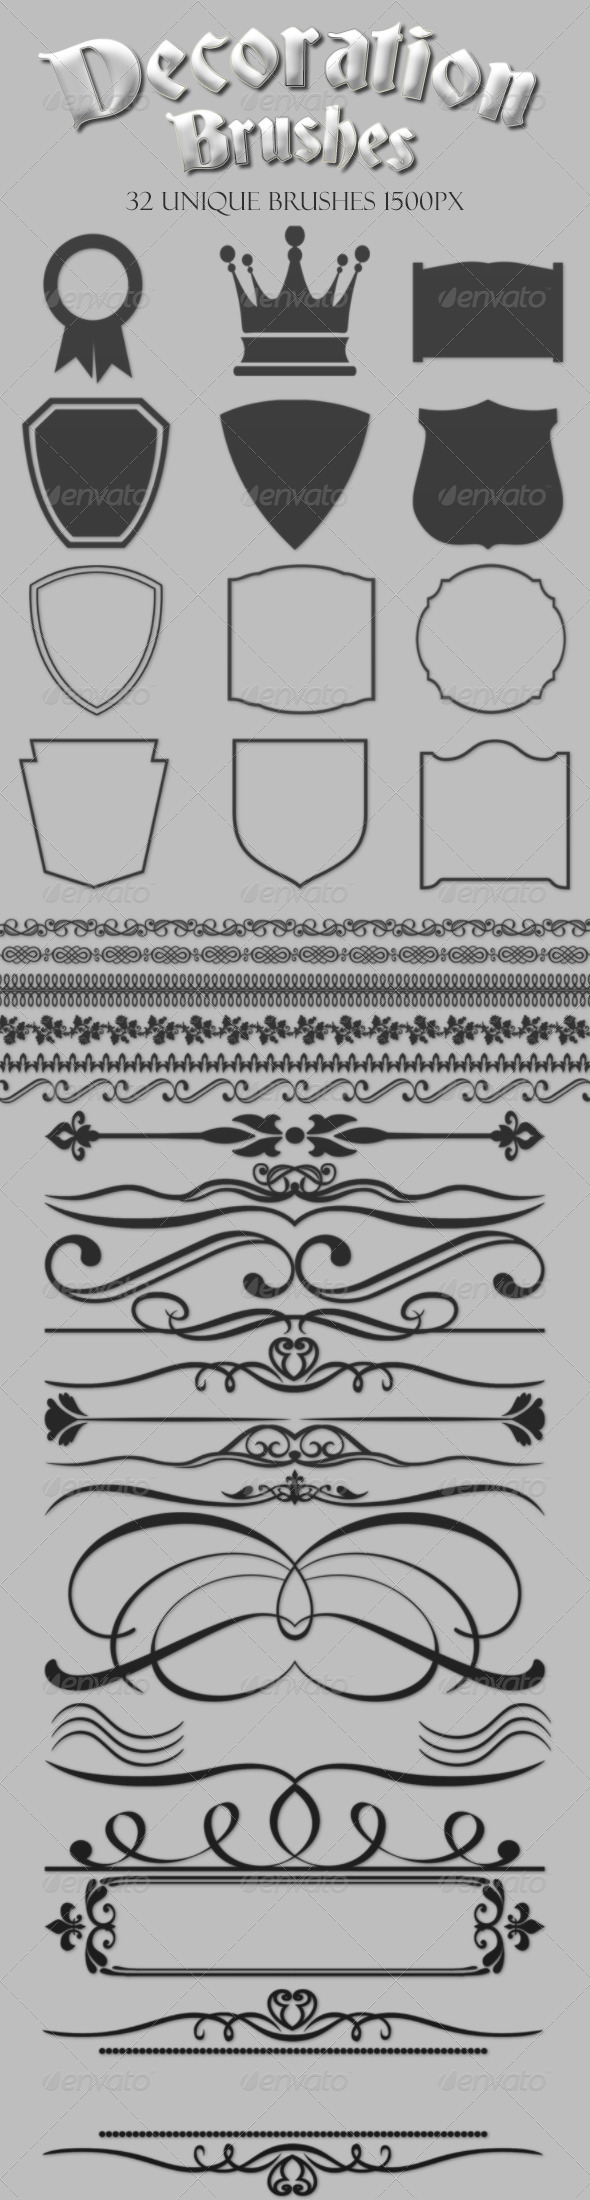 Decoration Brushes - Flourishes Brushes